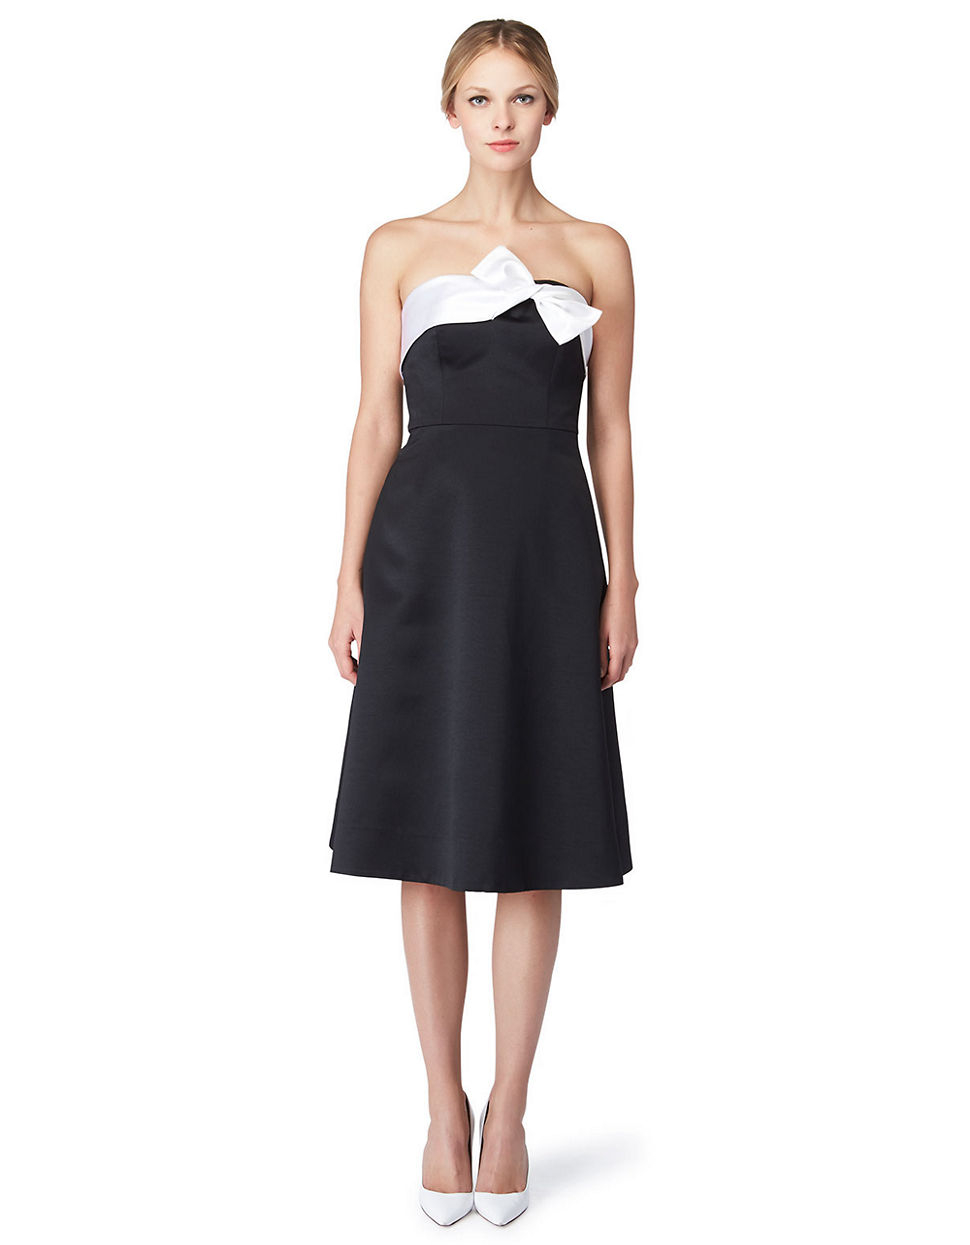 You'll find the newest styles for Black Dress White Bow here at s2w6s5q3to.gq, the world's leading wholesale and retail website. We provide great quality Black Dress White Bow at the best prices. s2w6s5q3to.gq is the online retailer that'll keep you coming back for more.